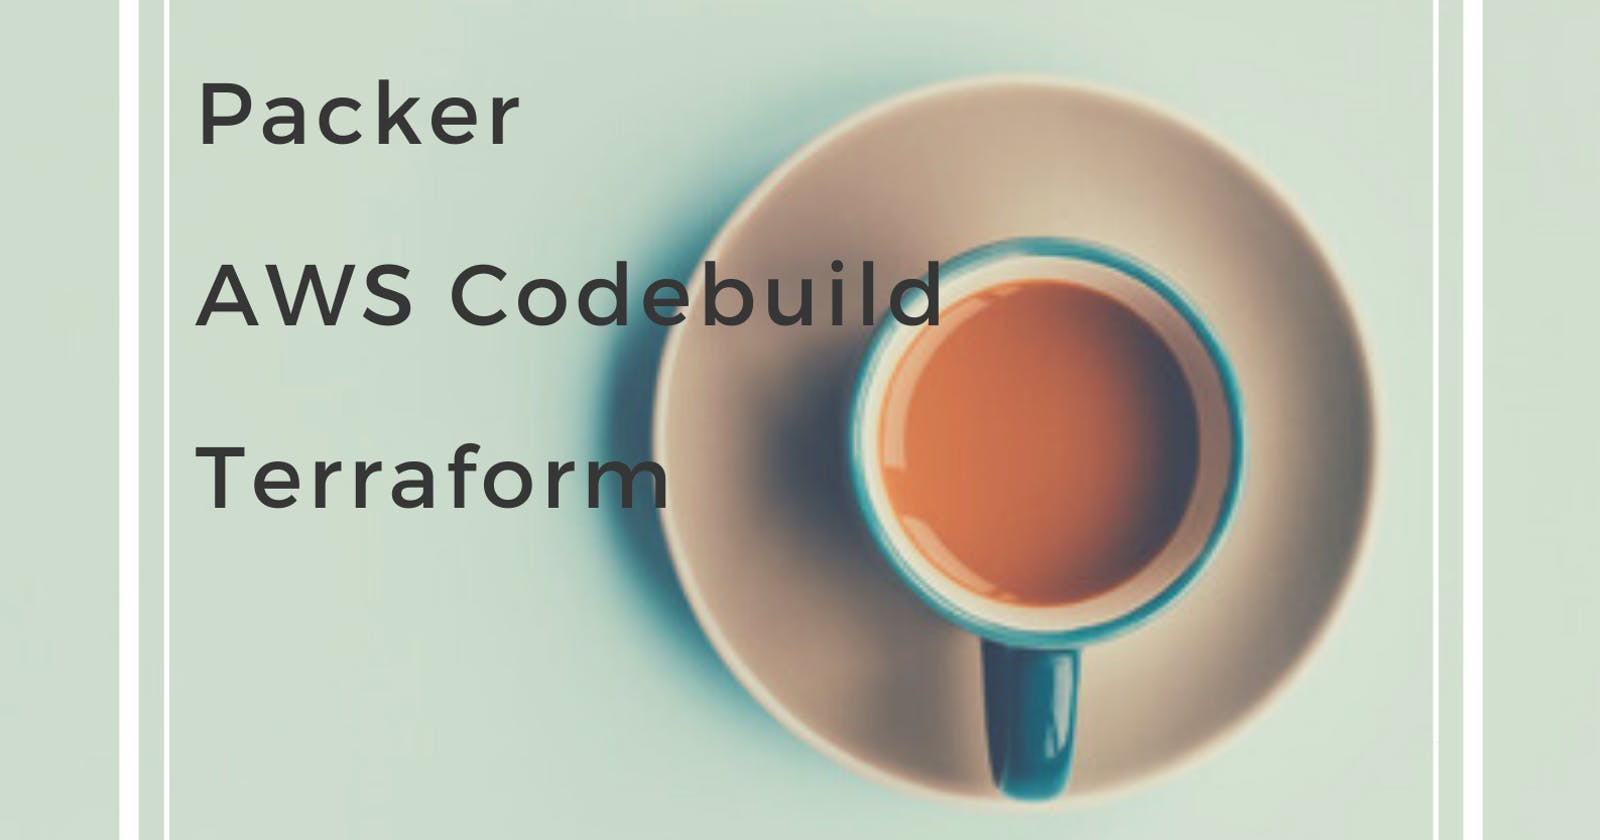 How to keep AMI up-to-date by using Packer, AWS Codebuild, and Terraform | Part 1.